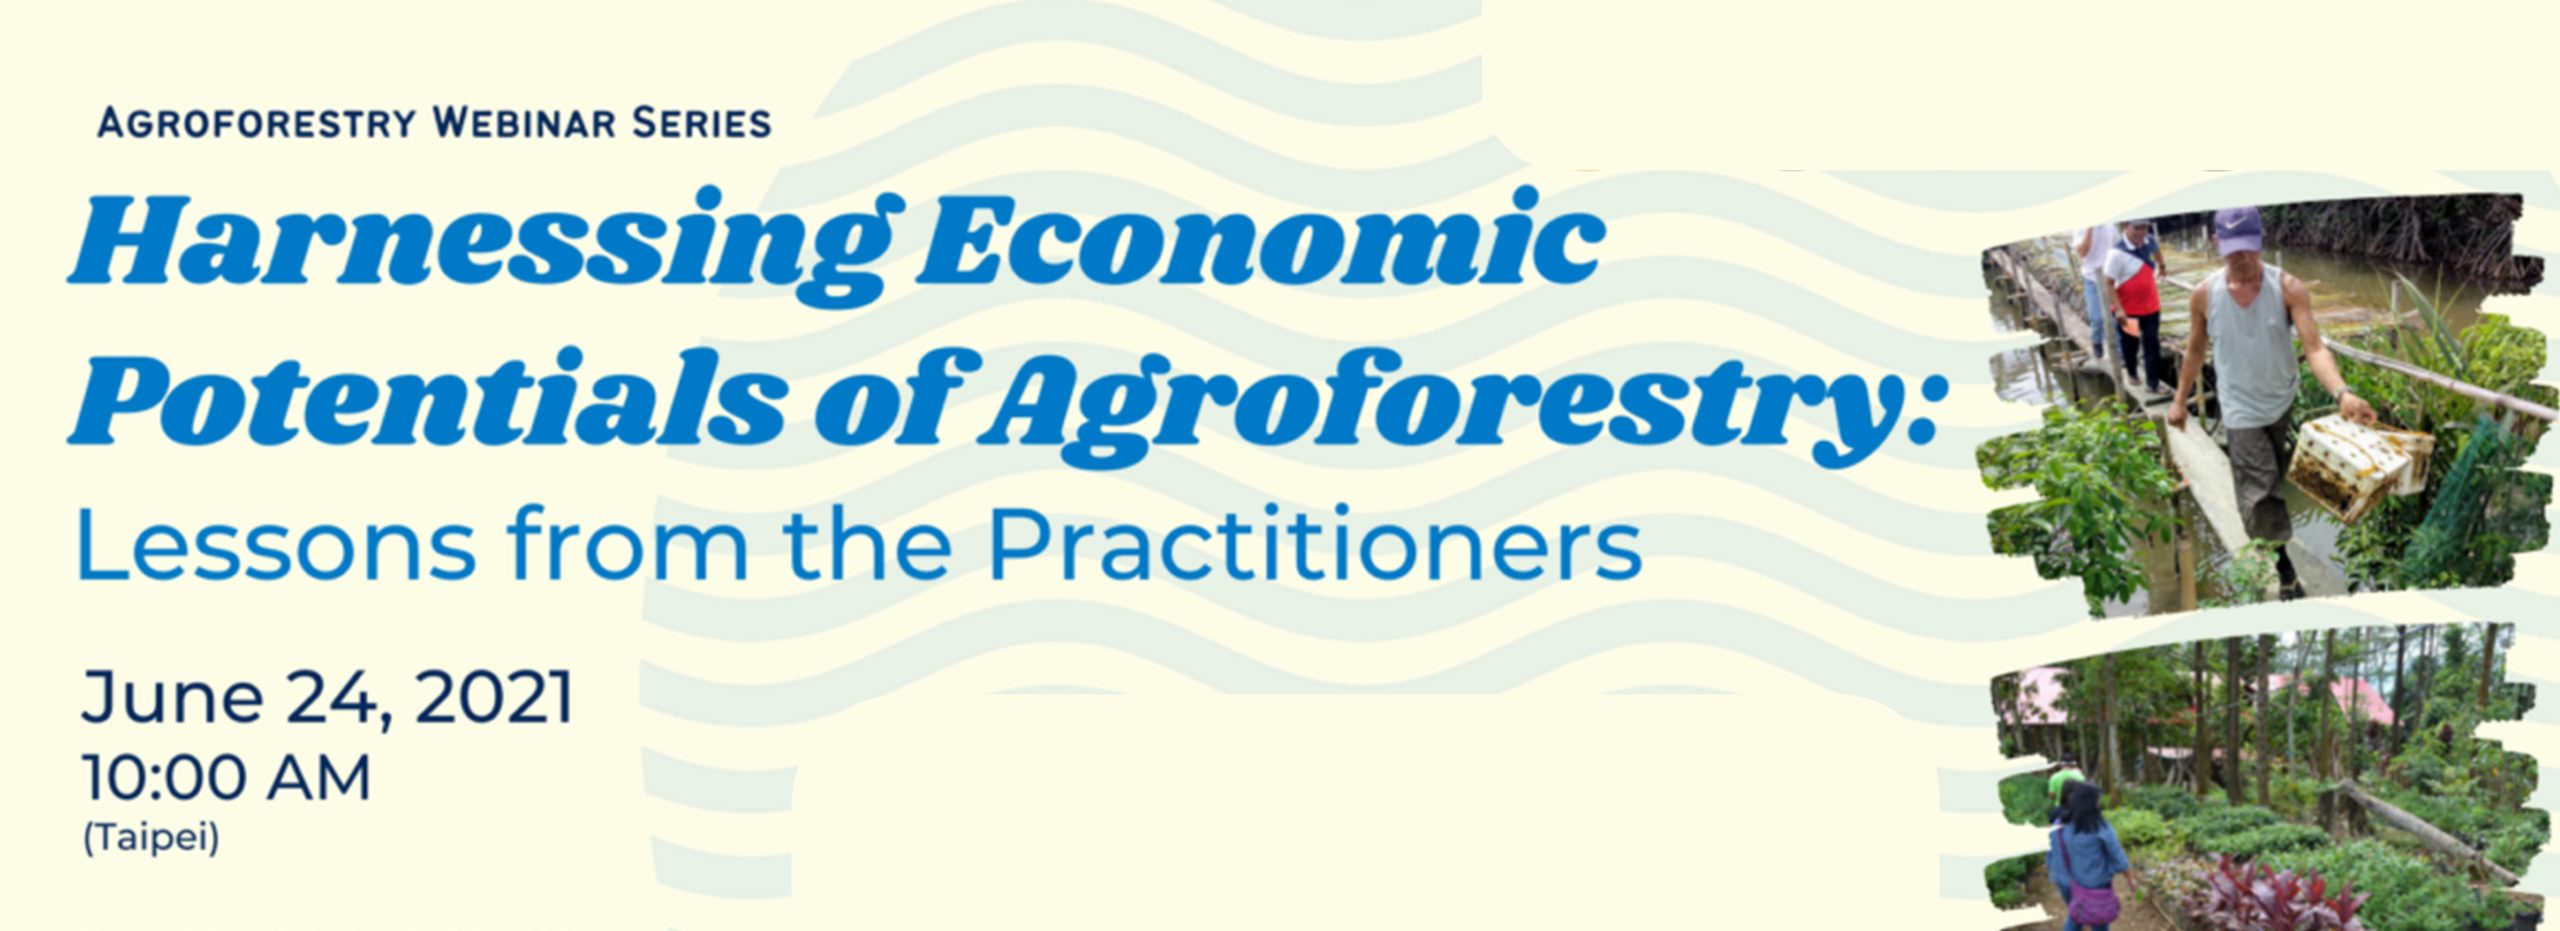 Harnessing Economic Potentials of Agroforestry: Lessons from Practitioners